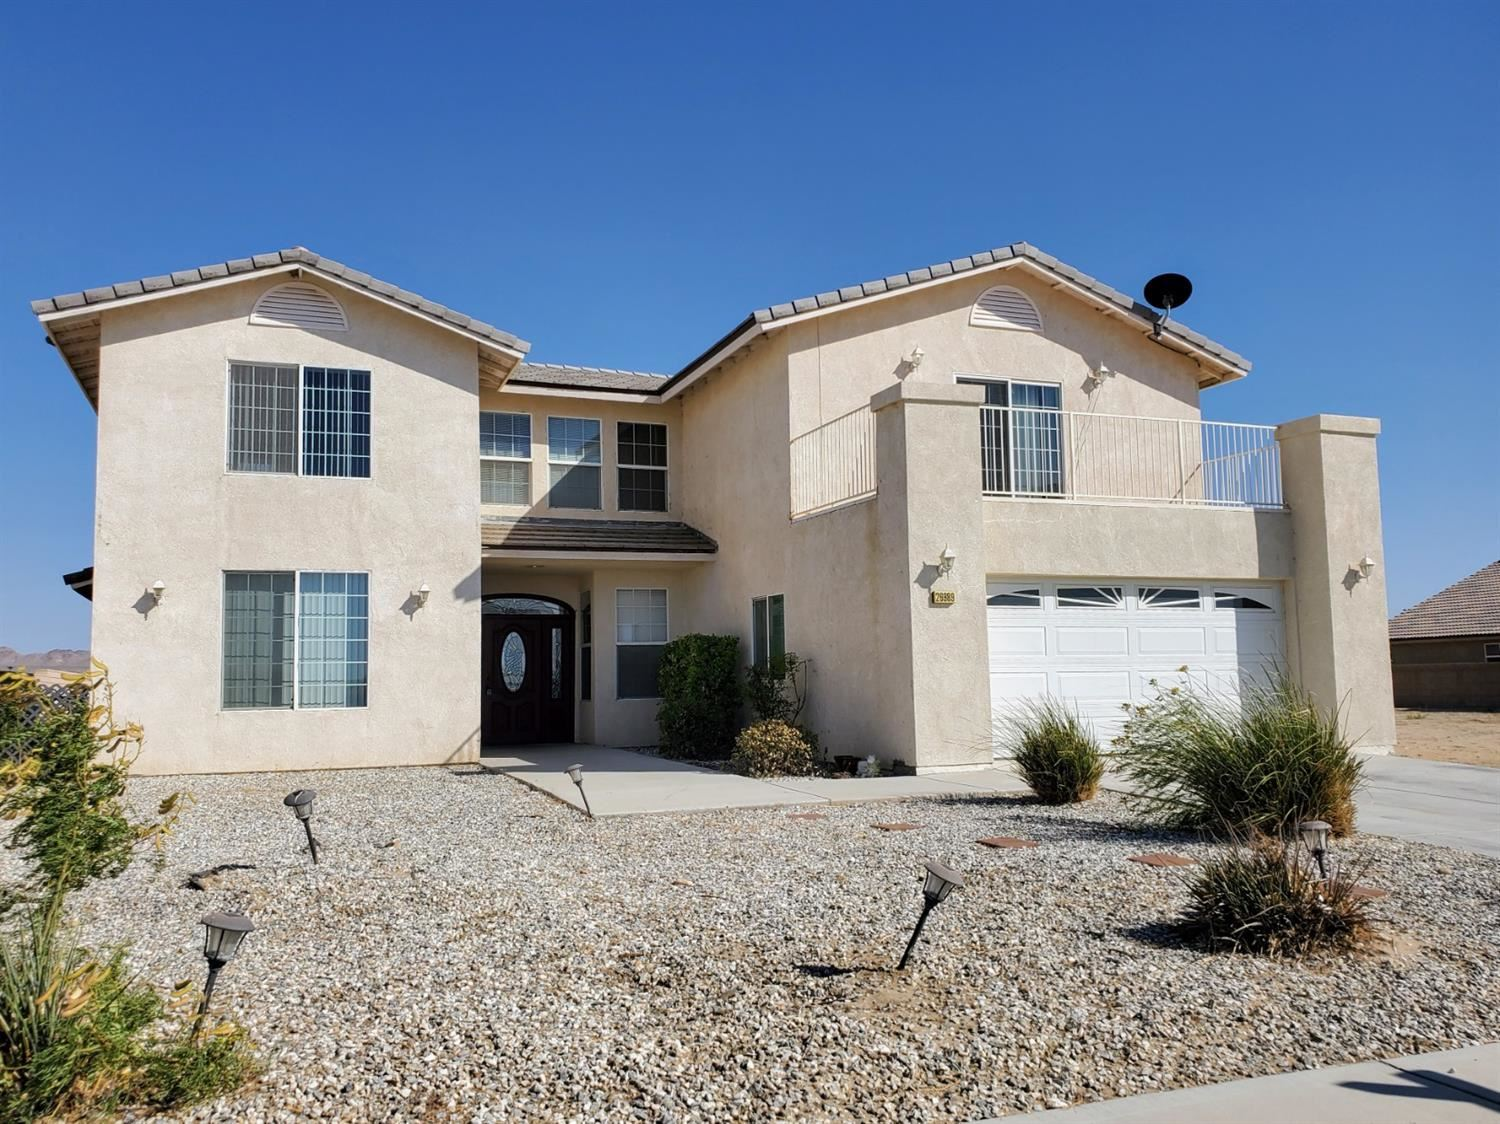 26989 Lakeview Drive, Helendale, CA 92342 - #: 535531